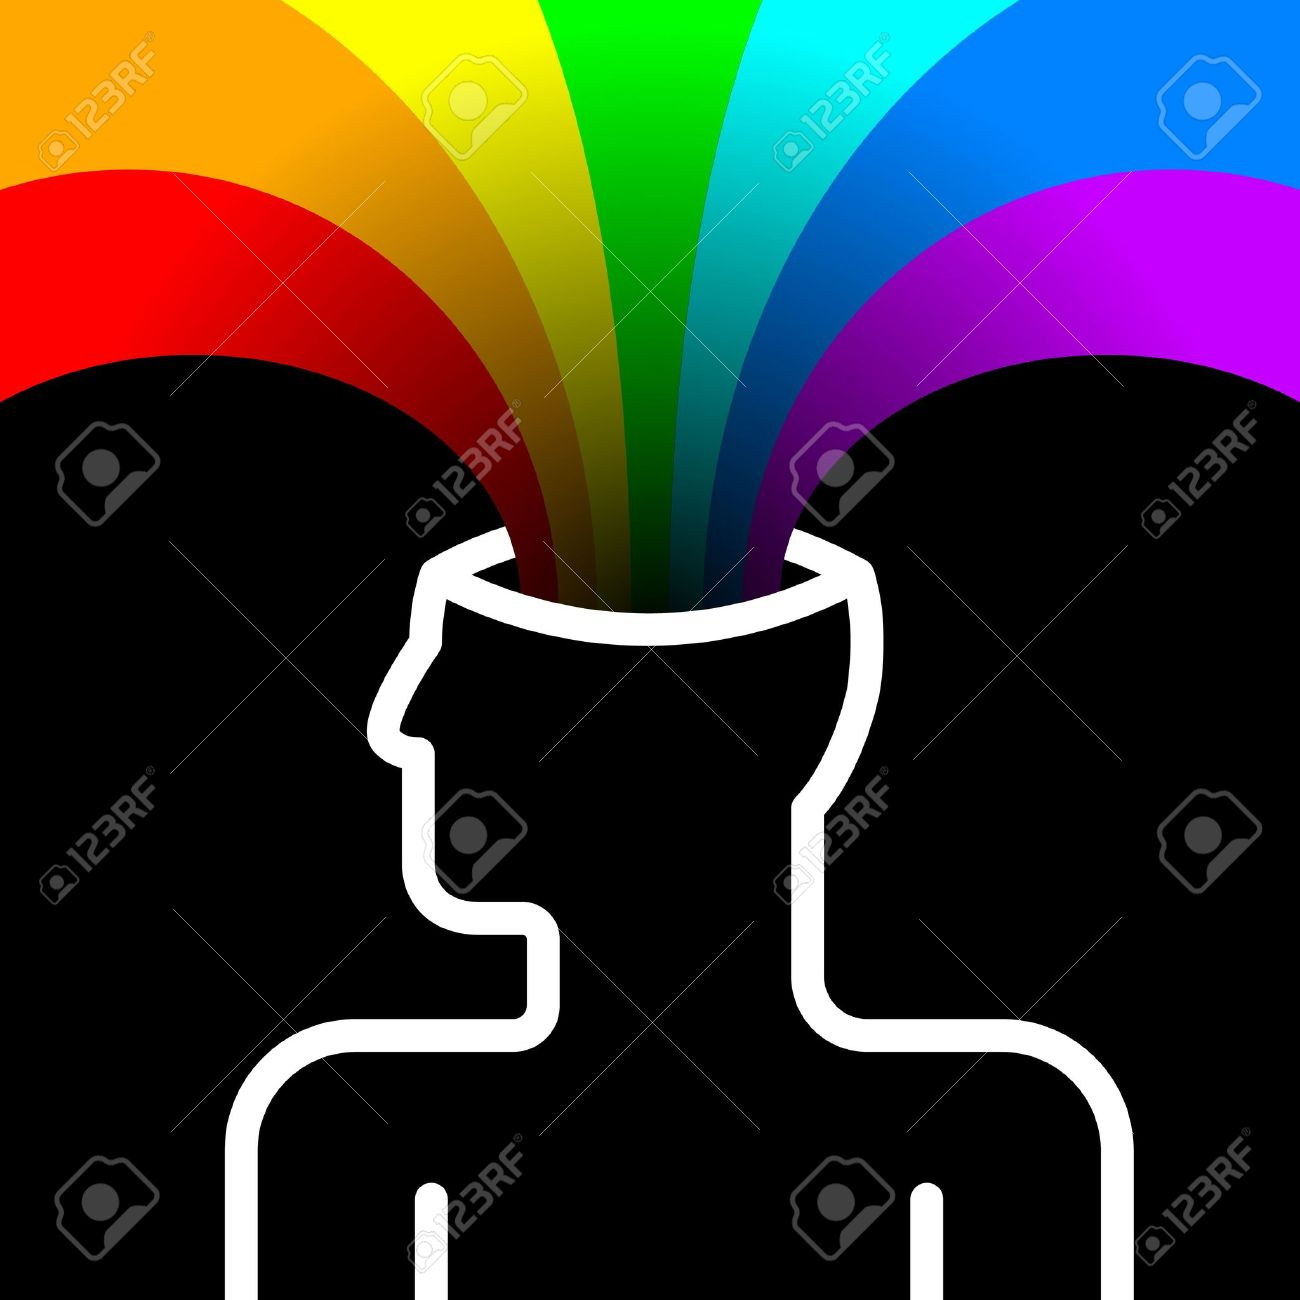 State Of Happiness With Rainbow Out Of Head Royalty Free Cliparts.